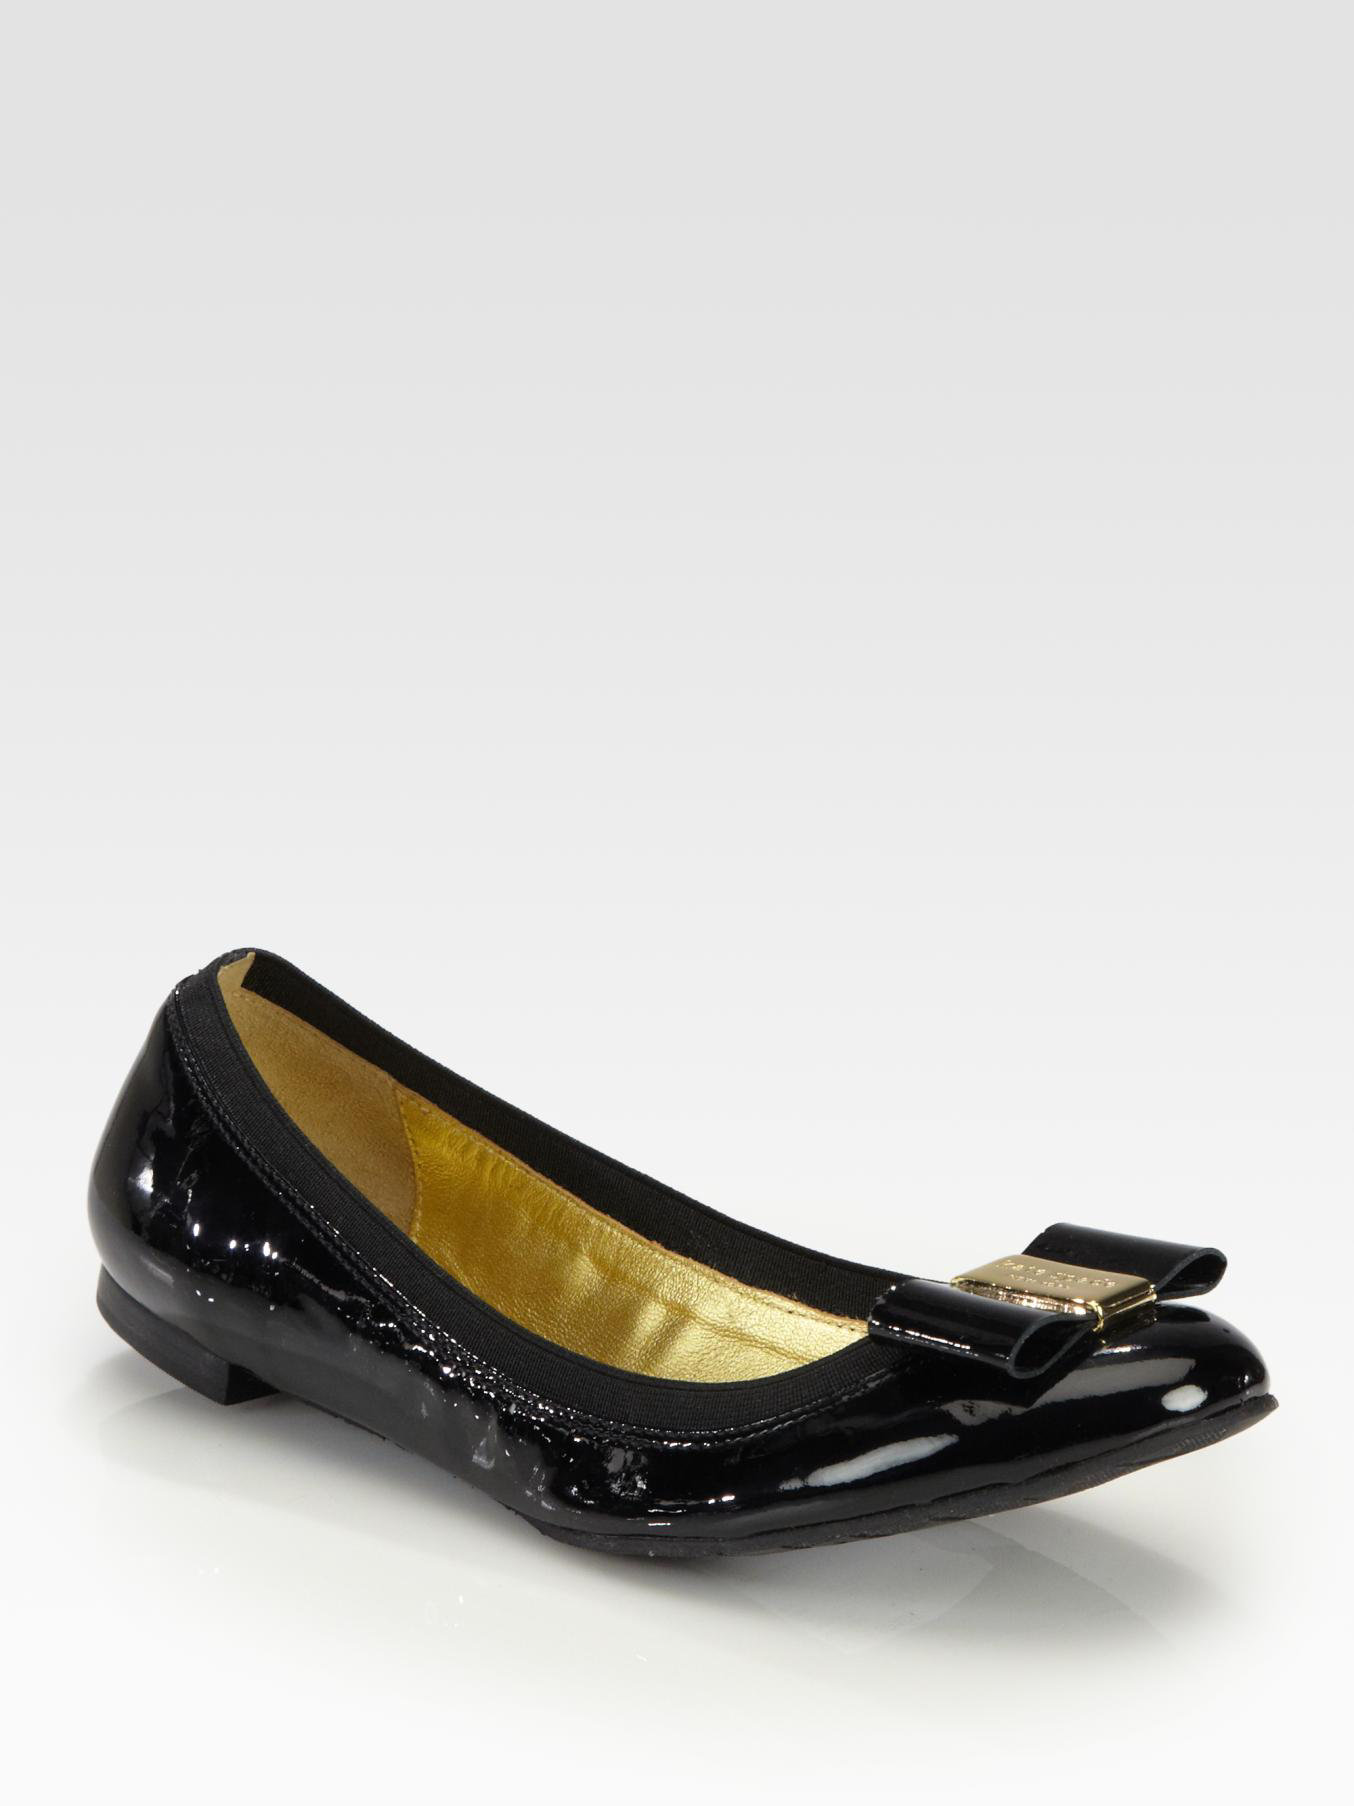 ffec70284347 Lyst - Kate Spade Tock Patent Leather Bow Ballet Flats in Black